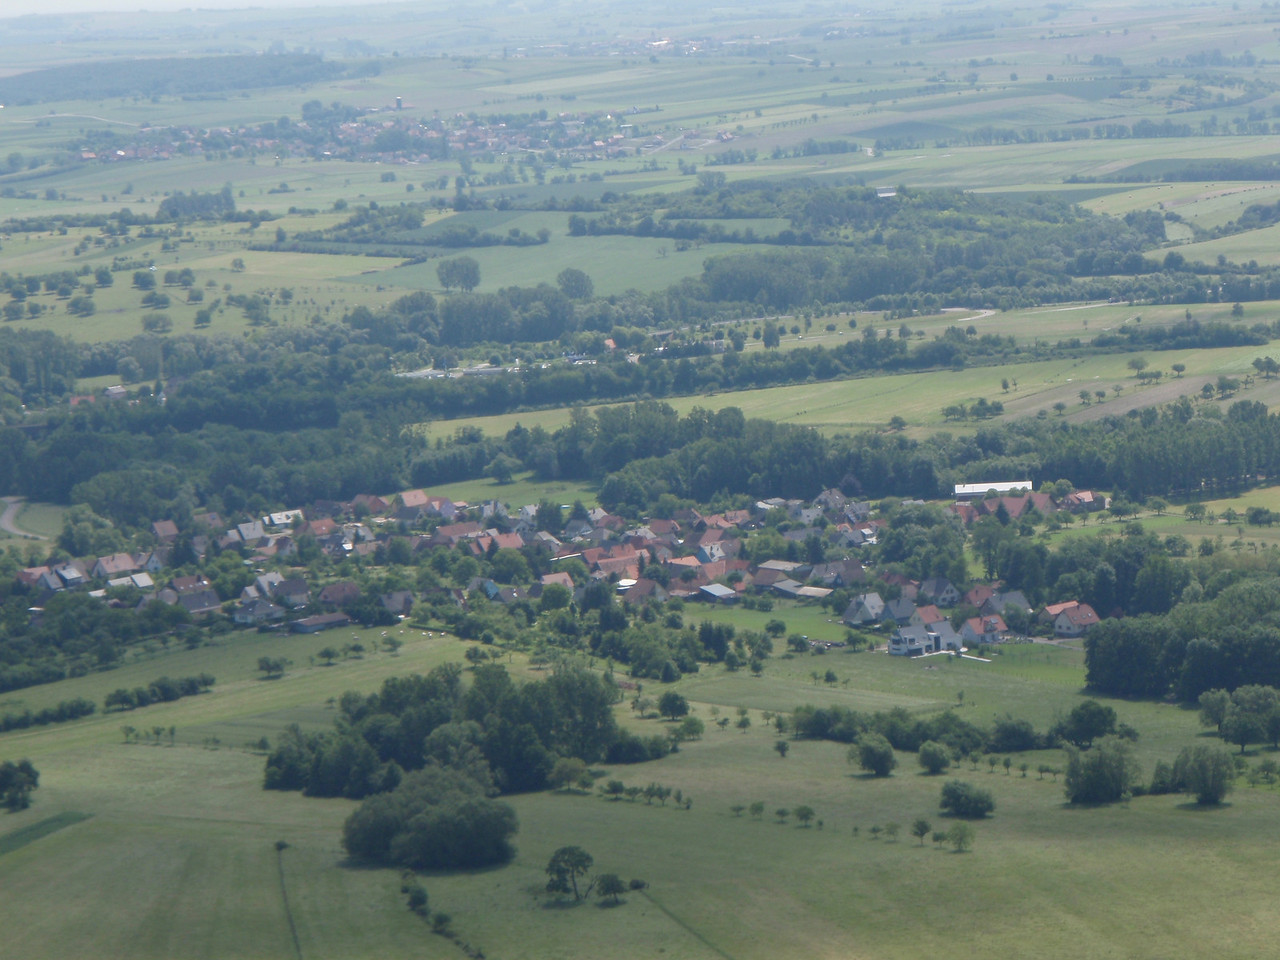 View from Haut-Barr